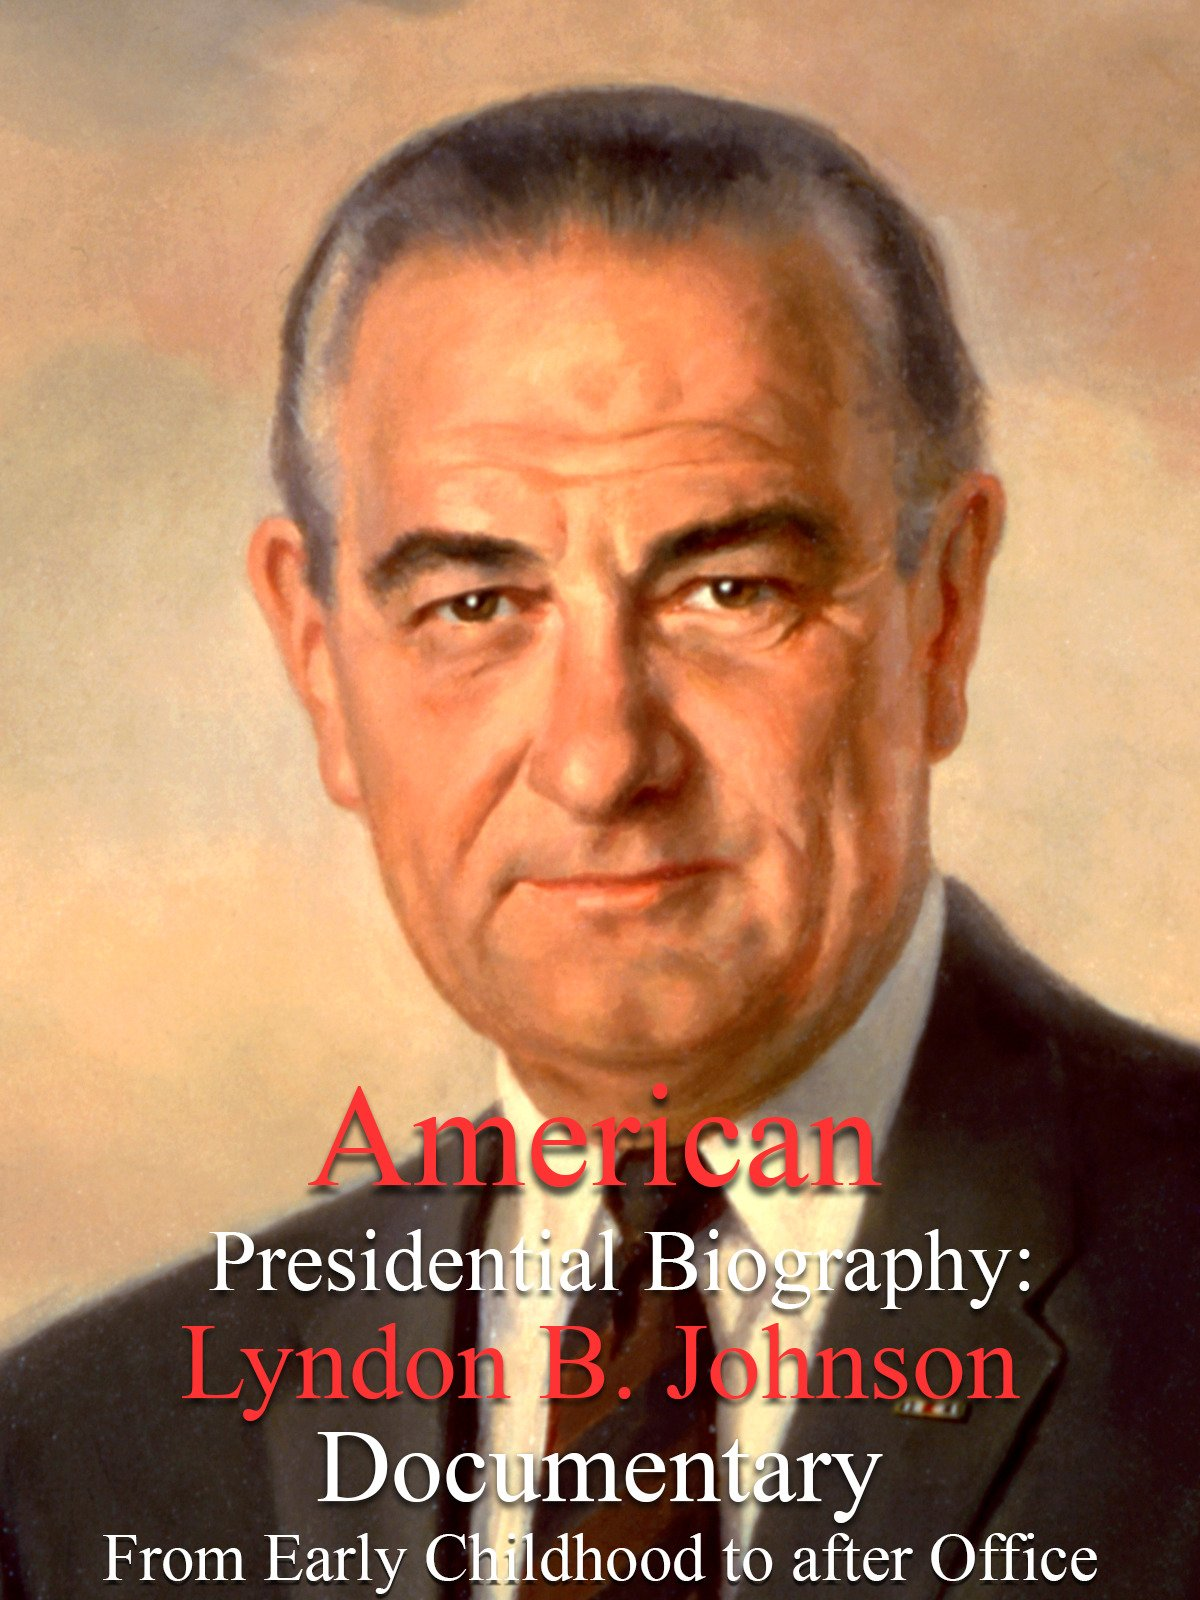 American Presidential Biography: Lyndon B. Johnson Documentary from Early Childhood to After Office